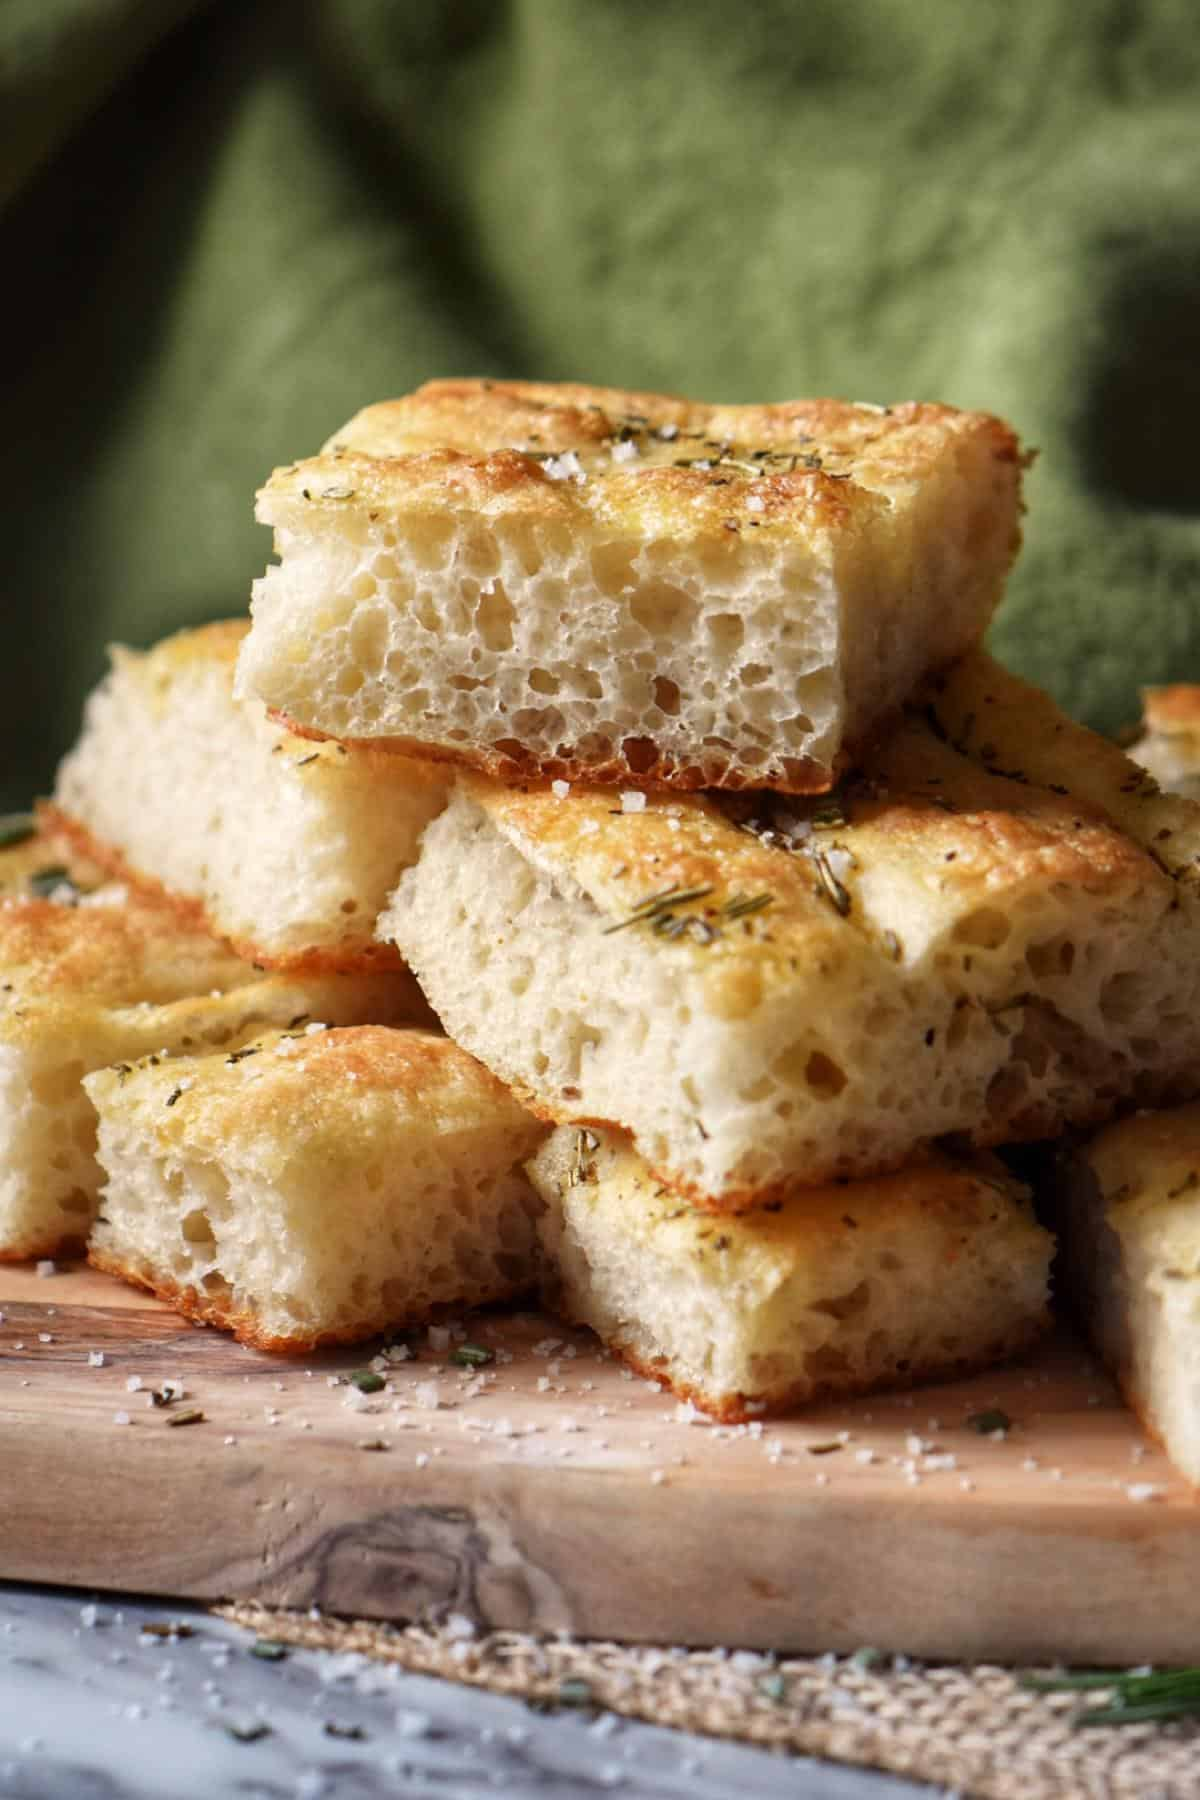 Slices of focaccia bread piled high on a wooden board.